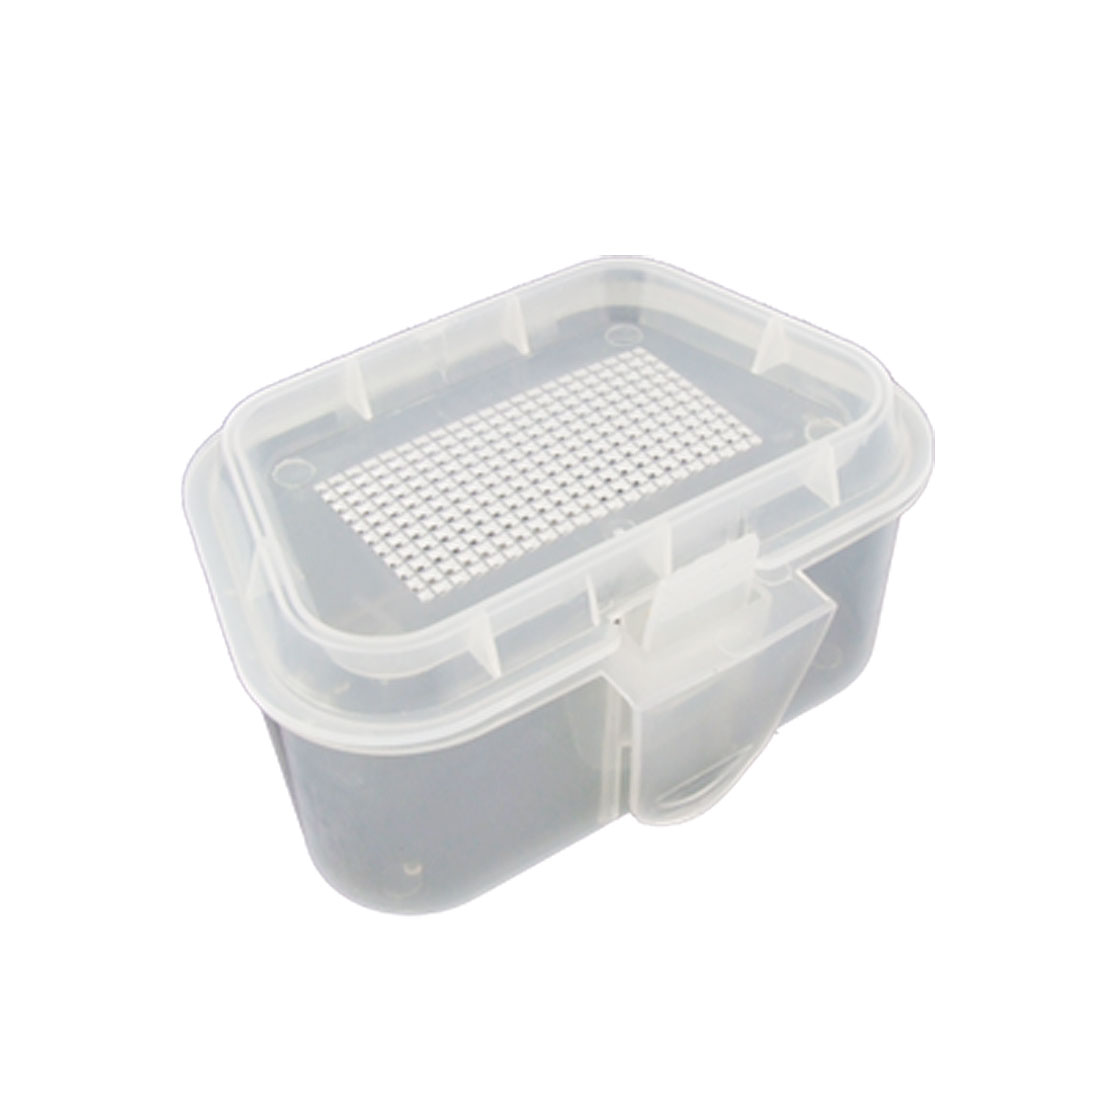 White Nonclip Cover Laddershaped Plastic Fishing Tackle Bait Case Box